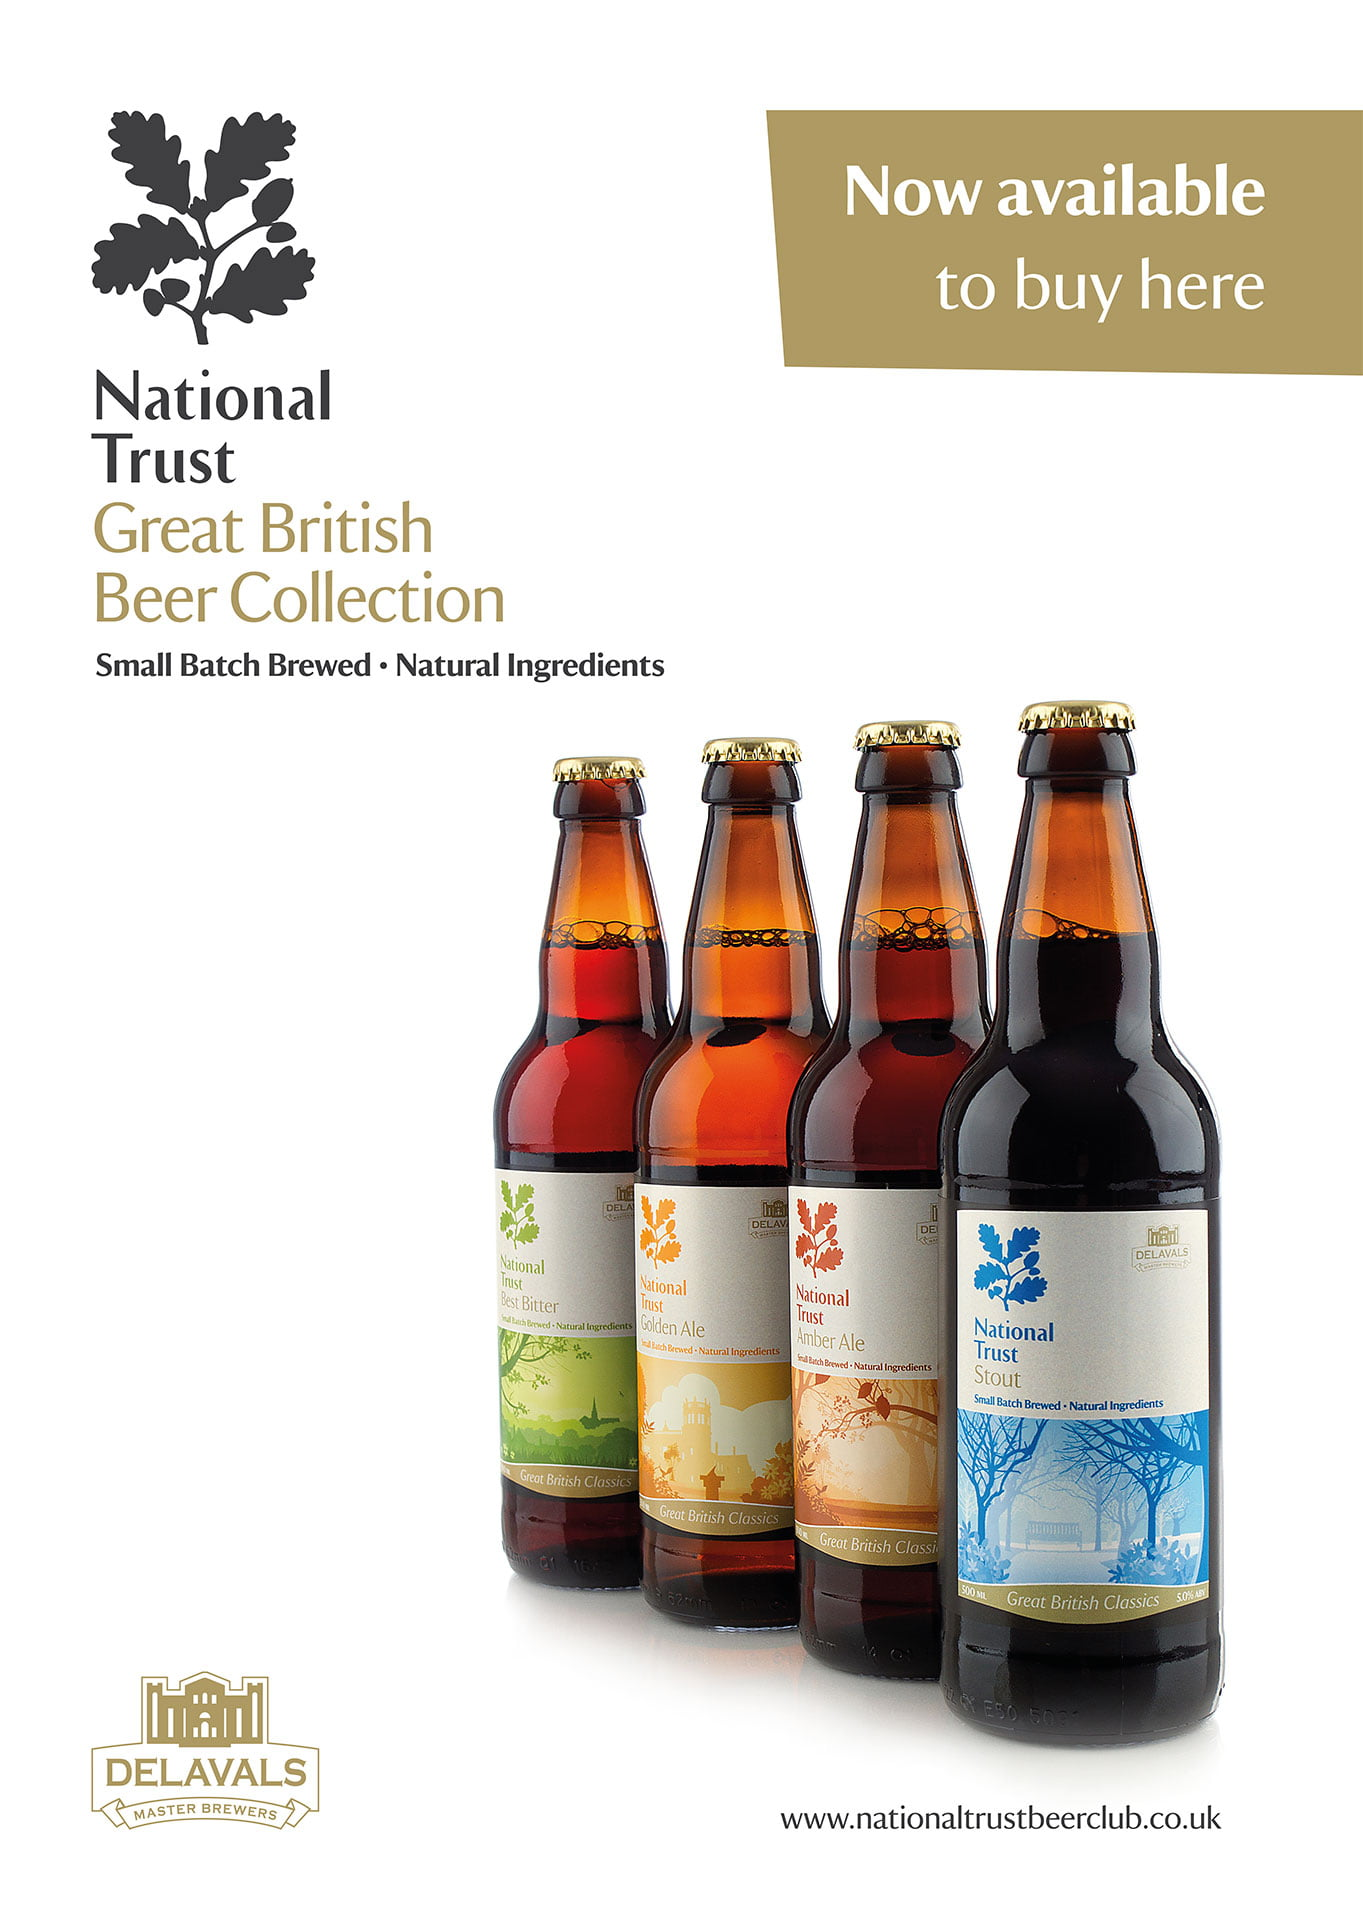 National Trust - Great British Beer Collection